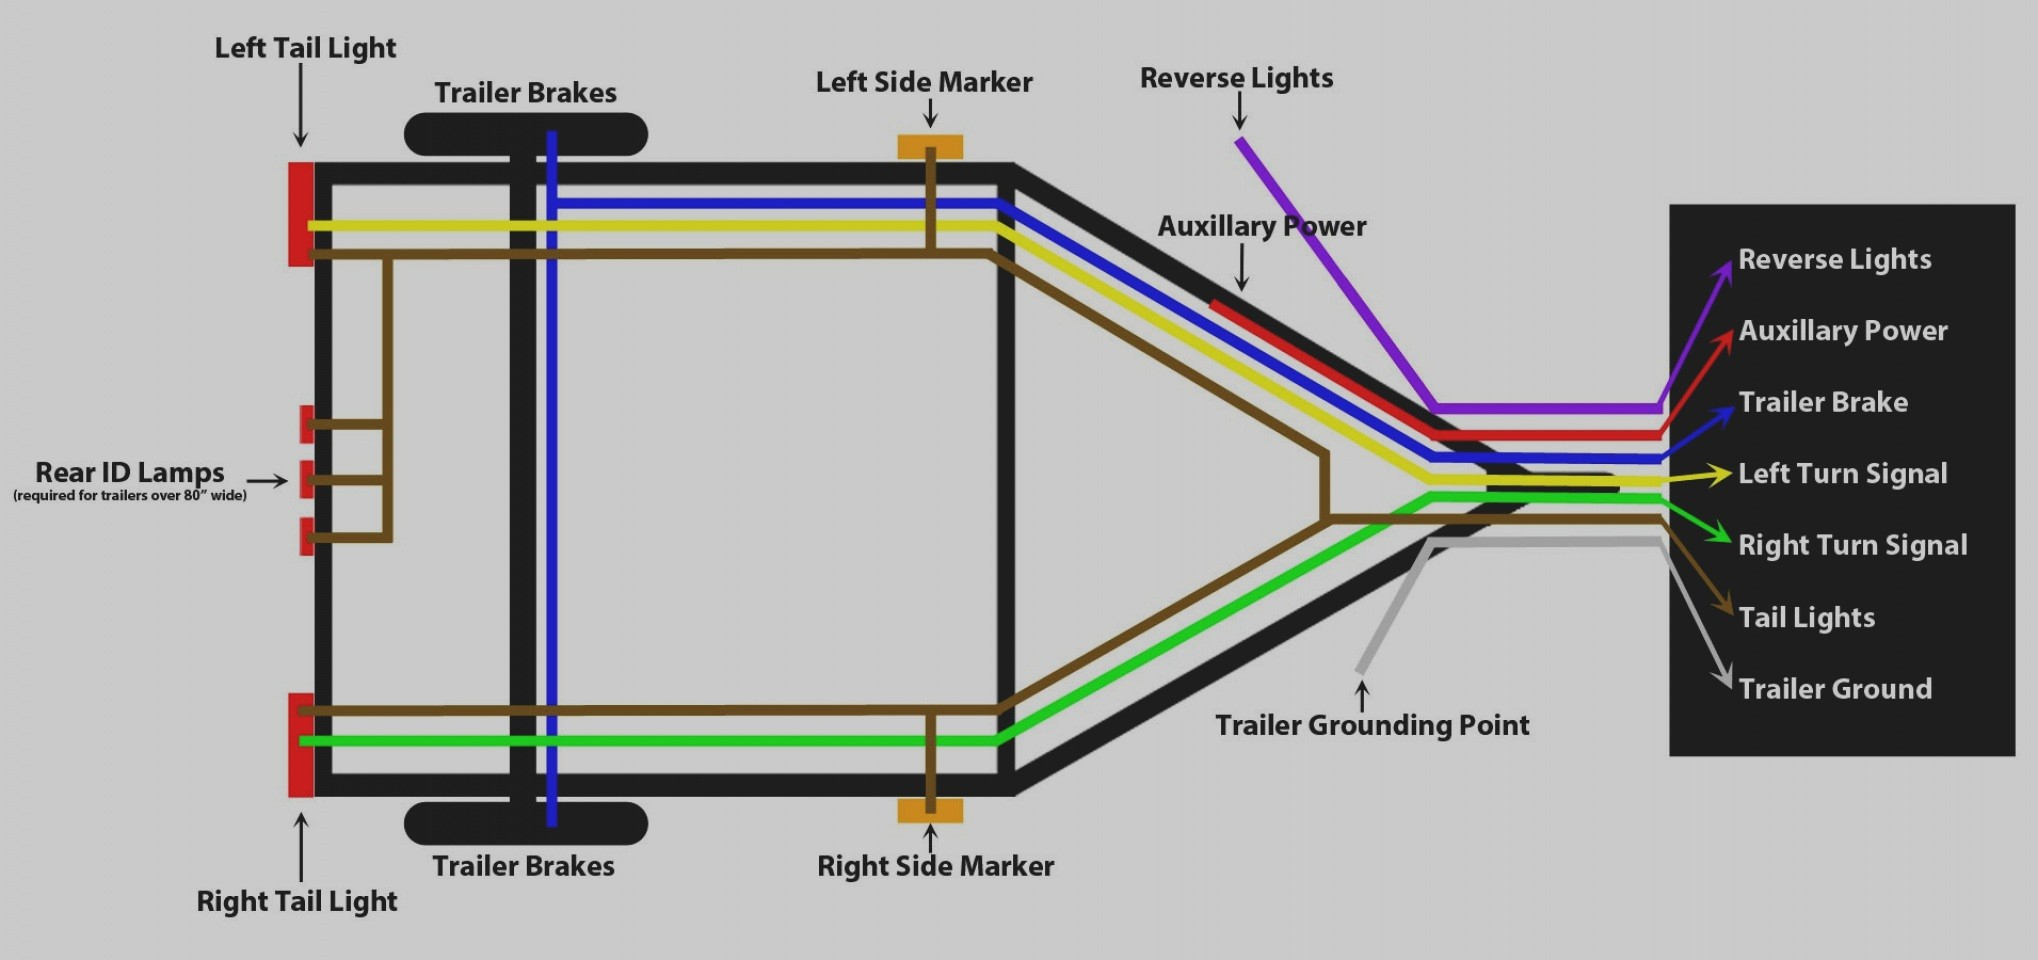 Car Trailer Wiring Diagram Nz | Wiring Diagram - Trailer Wiring Diagram Nz